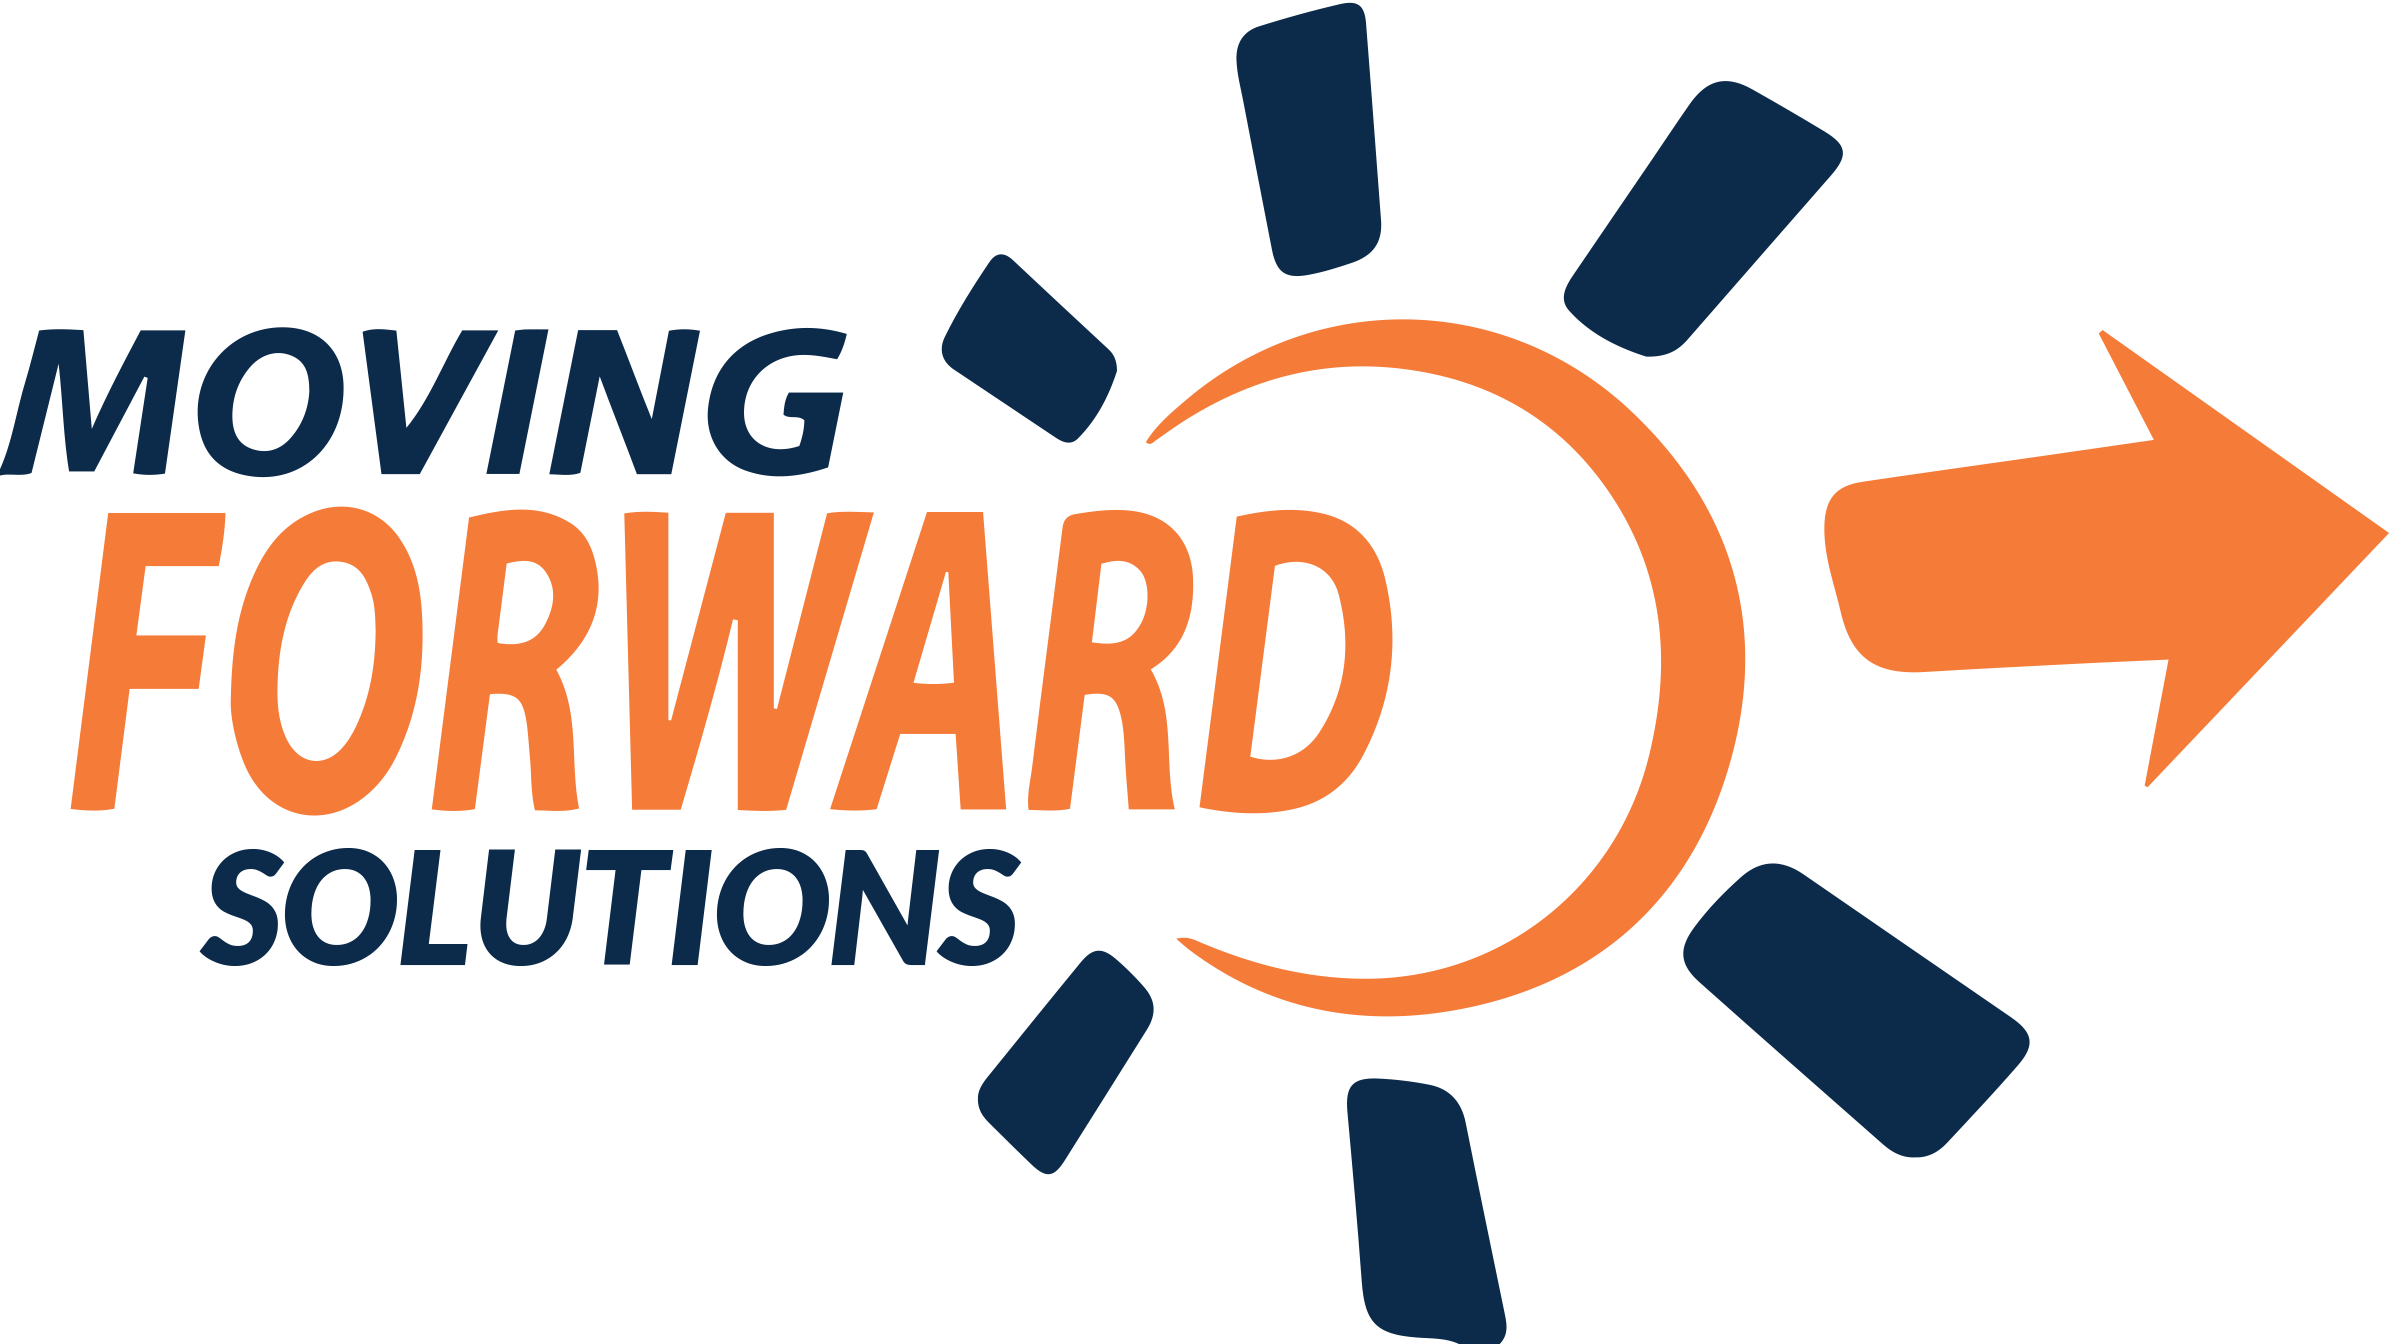 Moving Forward Solutions